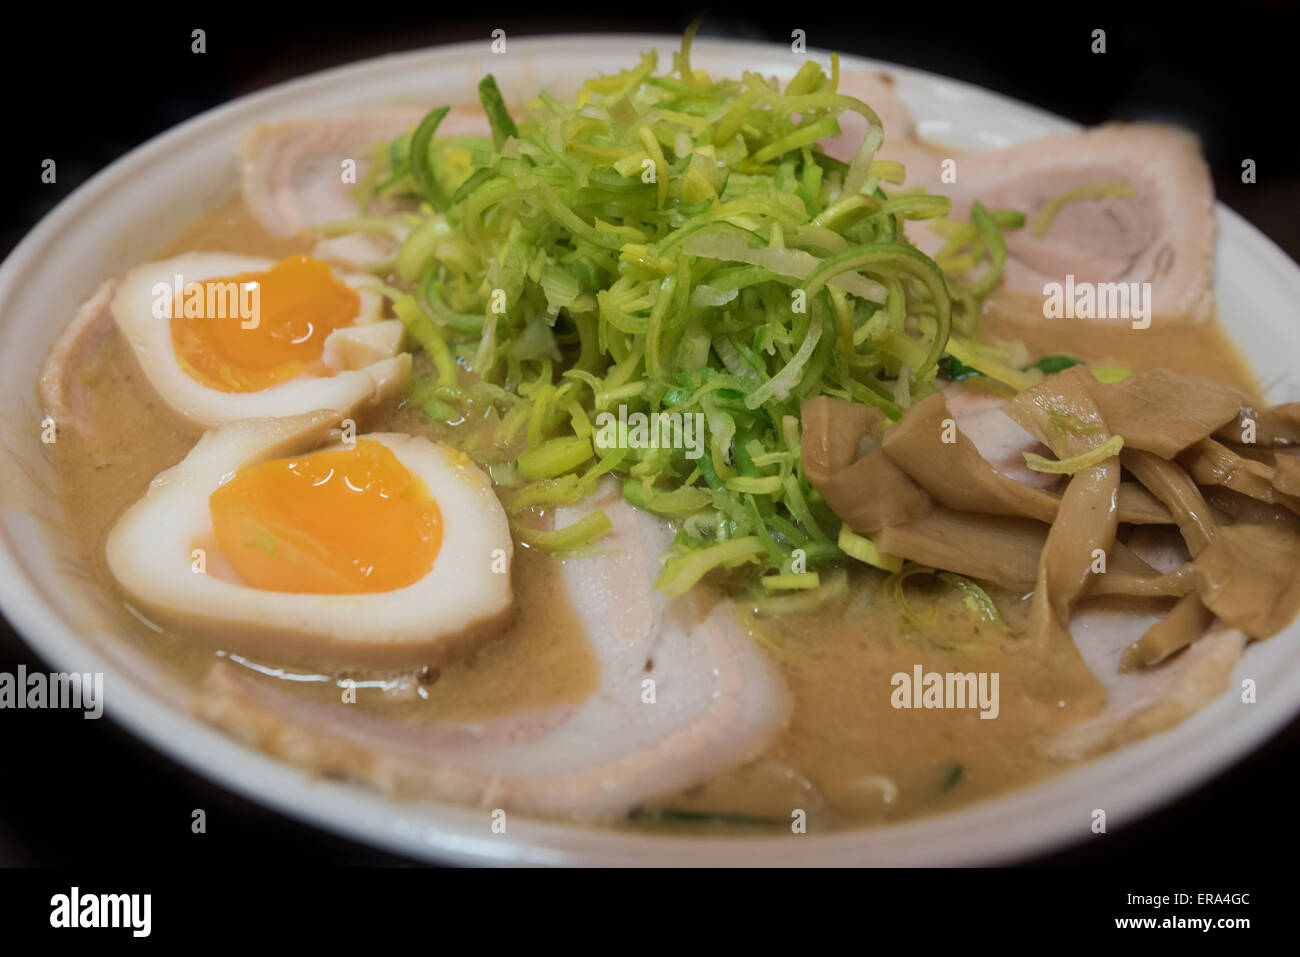 Closeup of a ramen  noodle soup with porc, chives, eggs, bamboo and leek isolated on black background Stock Photo